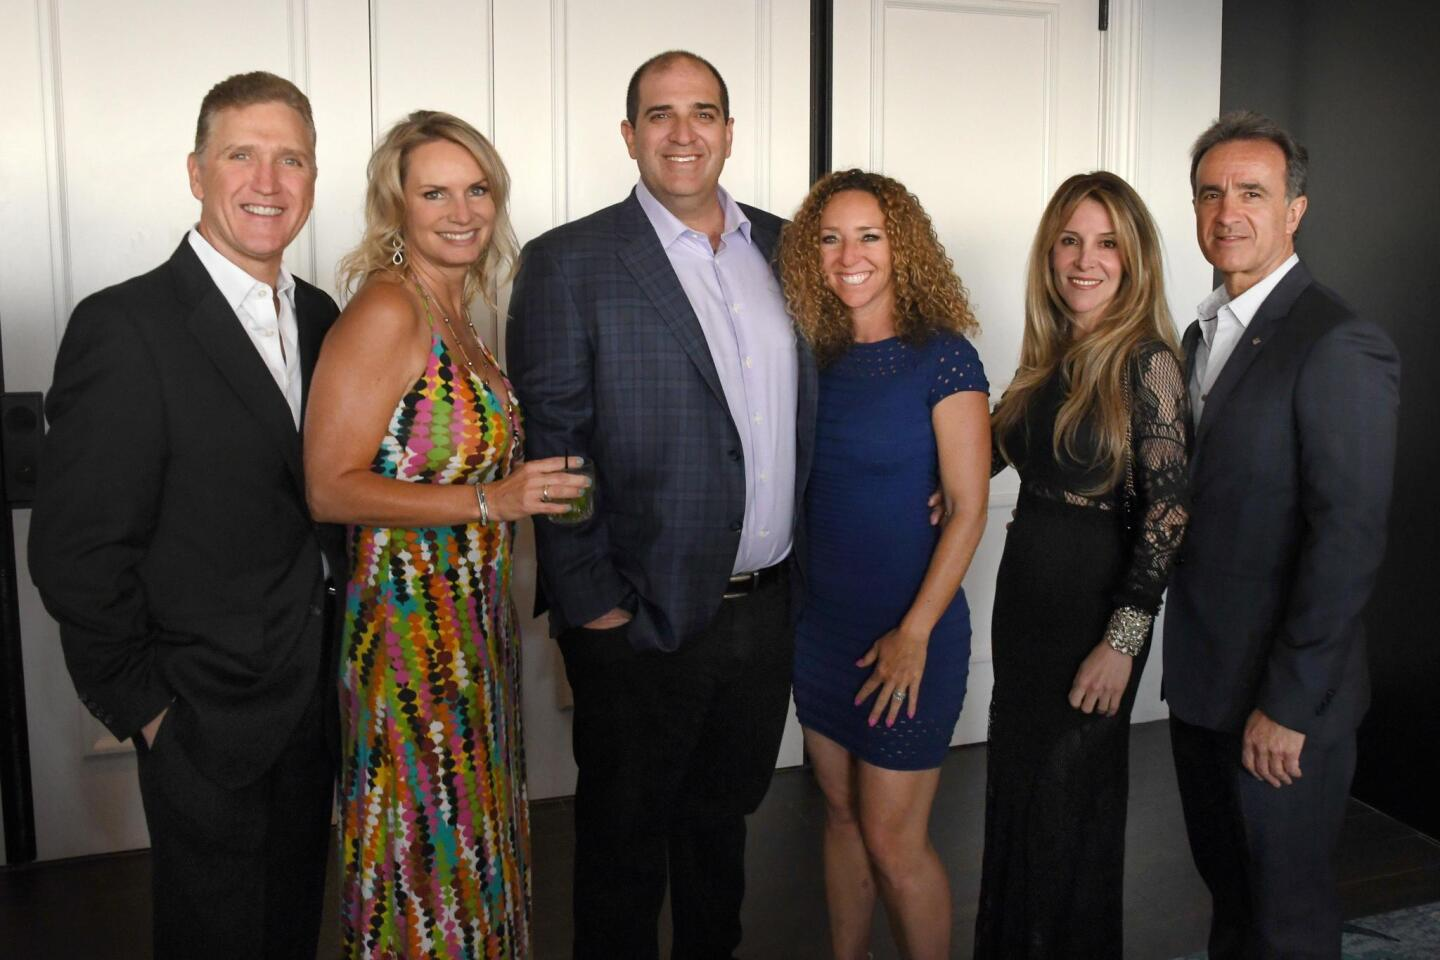 SEAL Family Foundation 'Families First' San Diego Dinner Gala